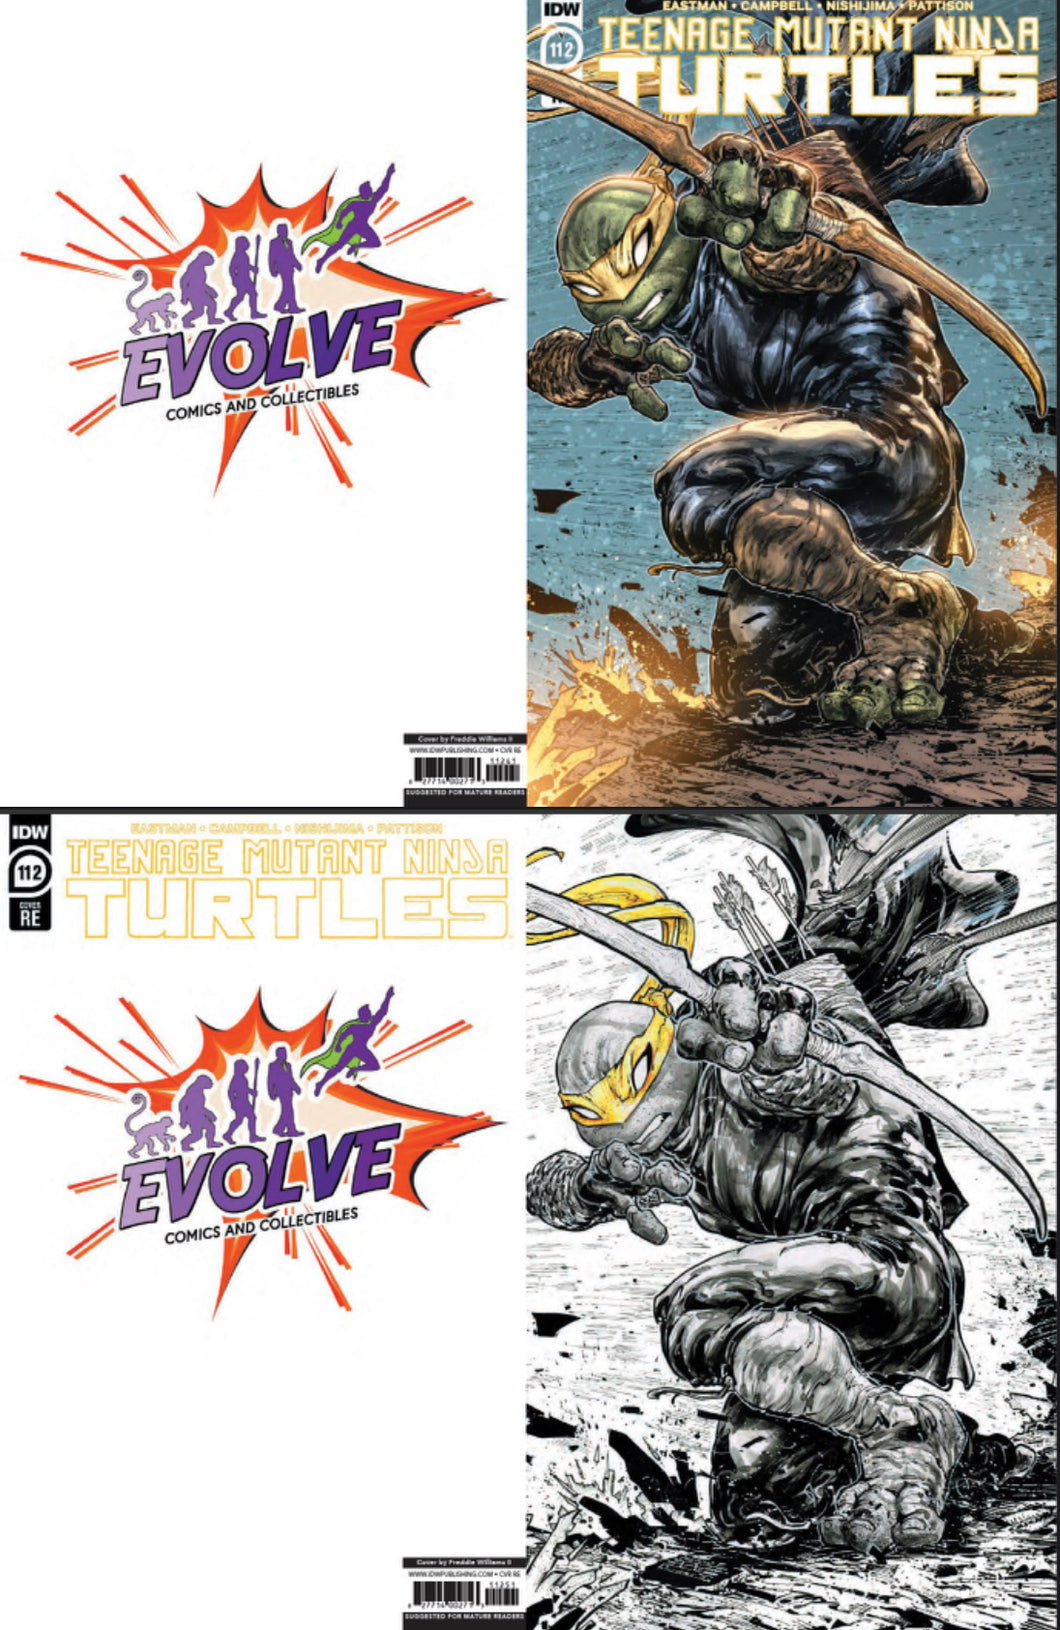 TMNT 112 Evolve Comics and Collectibles Variant Set Freddie Williams